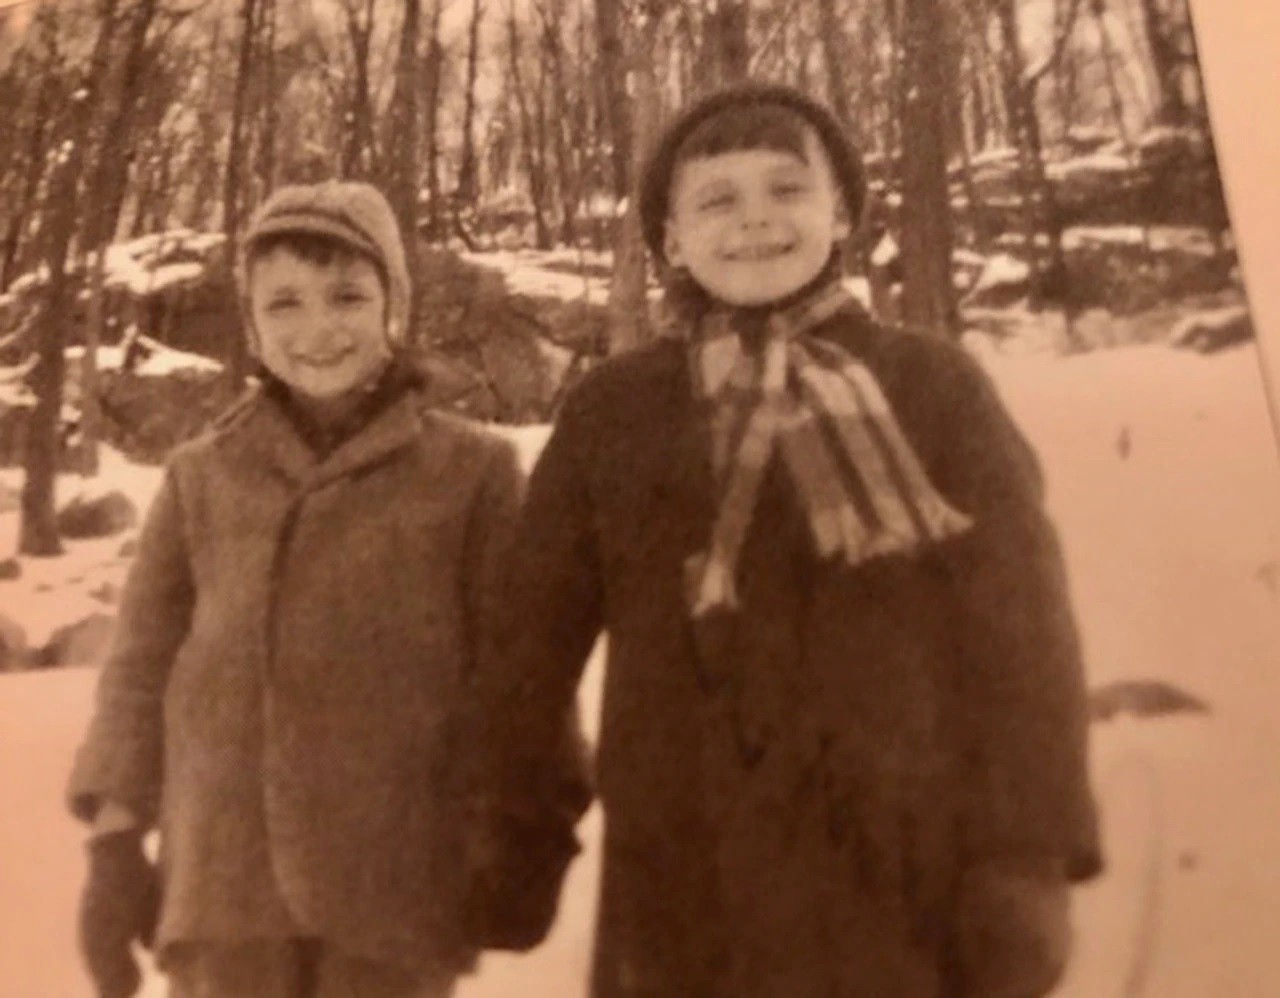 """From left to right, 7-year-old """"Chuckie"""" and 8-year-old Bobby Carroll in 1948, two orphans in foster care, before they were sent to the New Jersey State Colony for Boys, an institution later renamed the New Lisbon Developmental Center."""